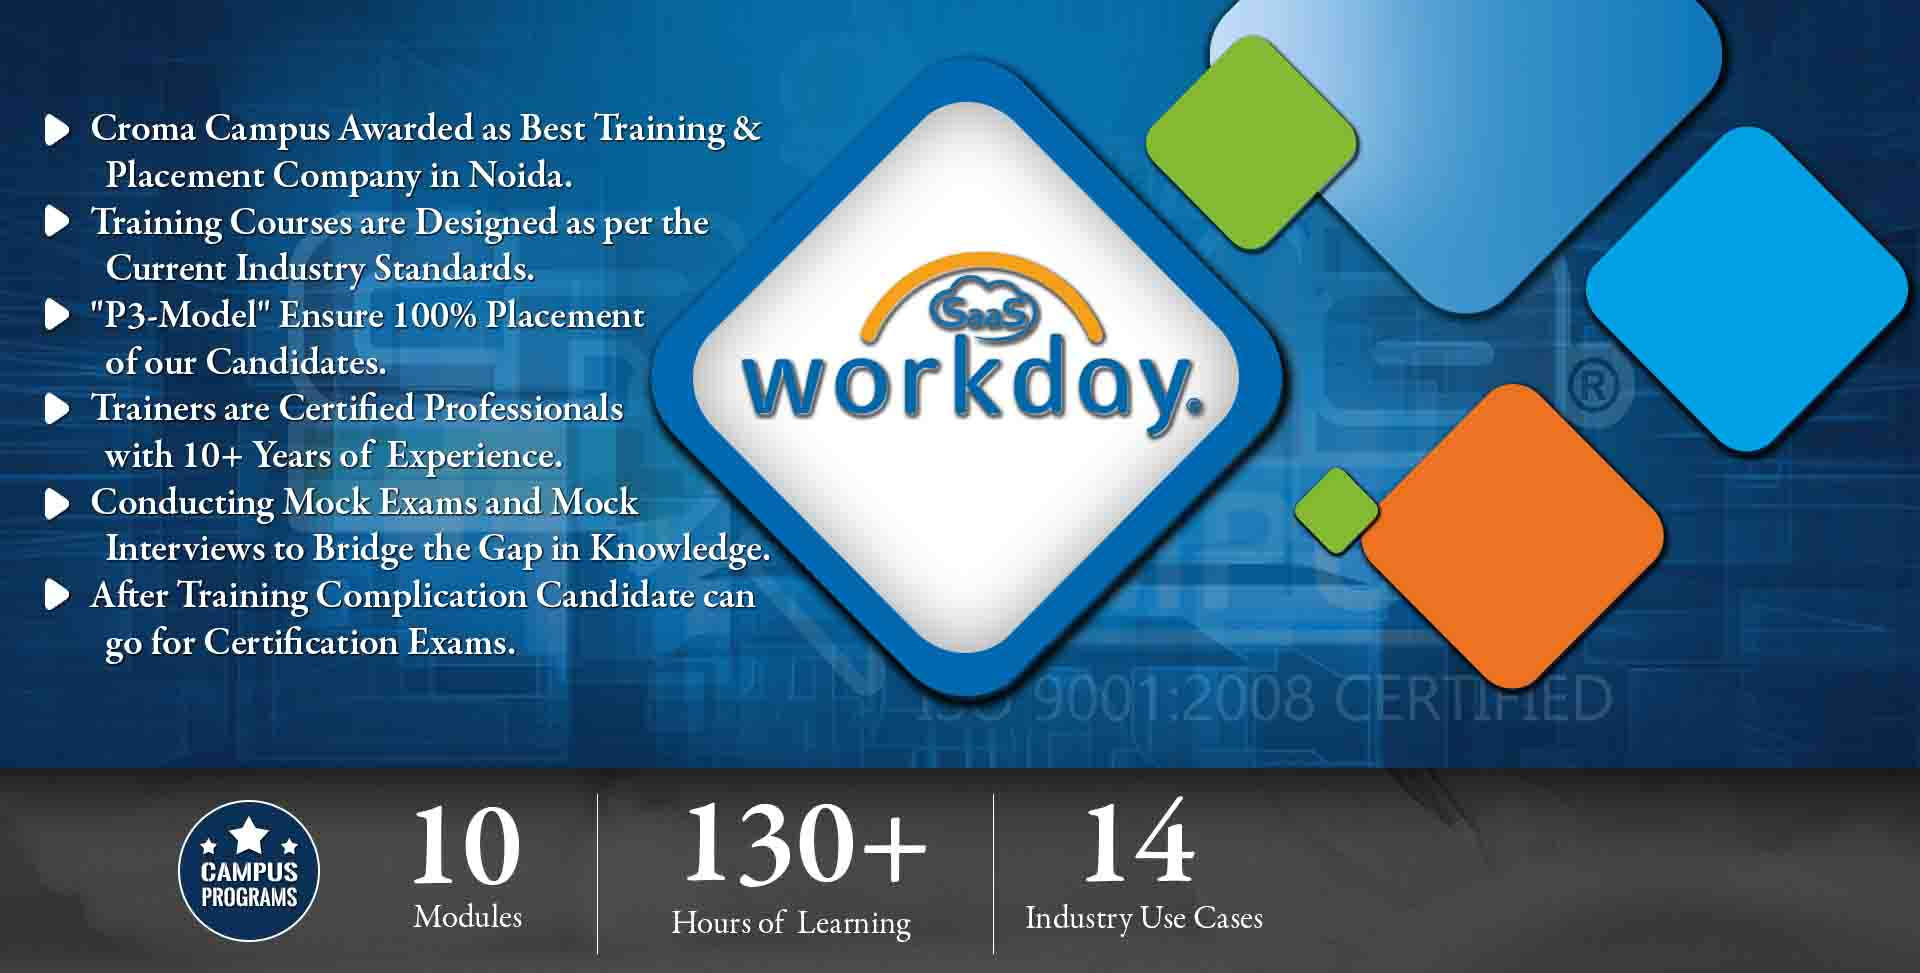 Workday SAAS Training in Gurgaon- Croma Campus